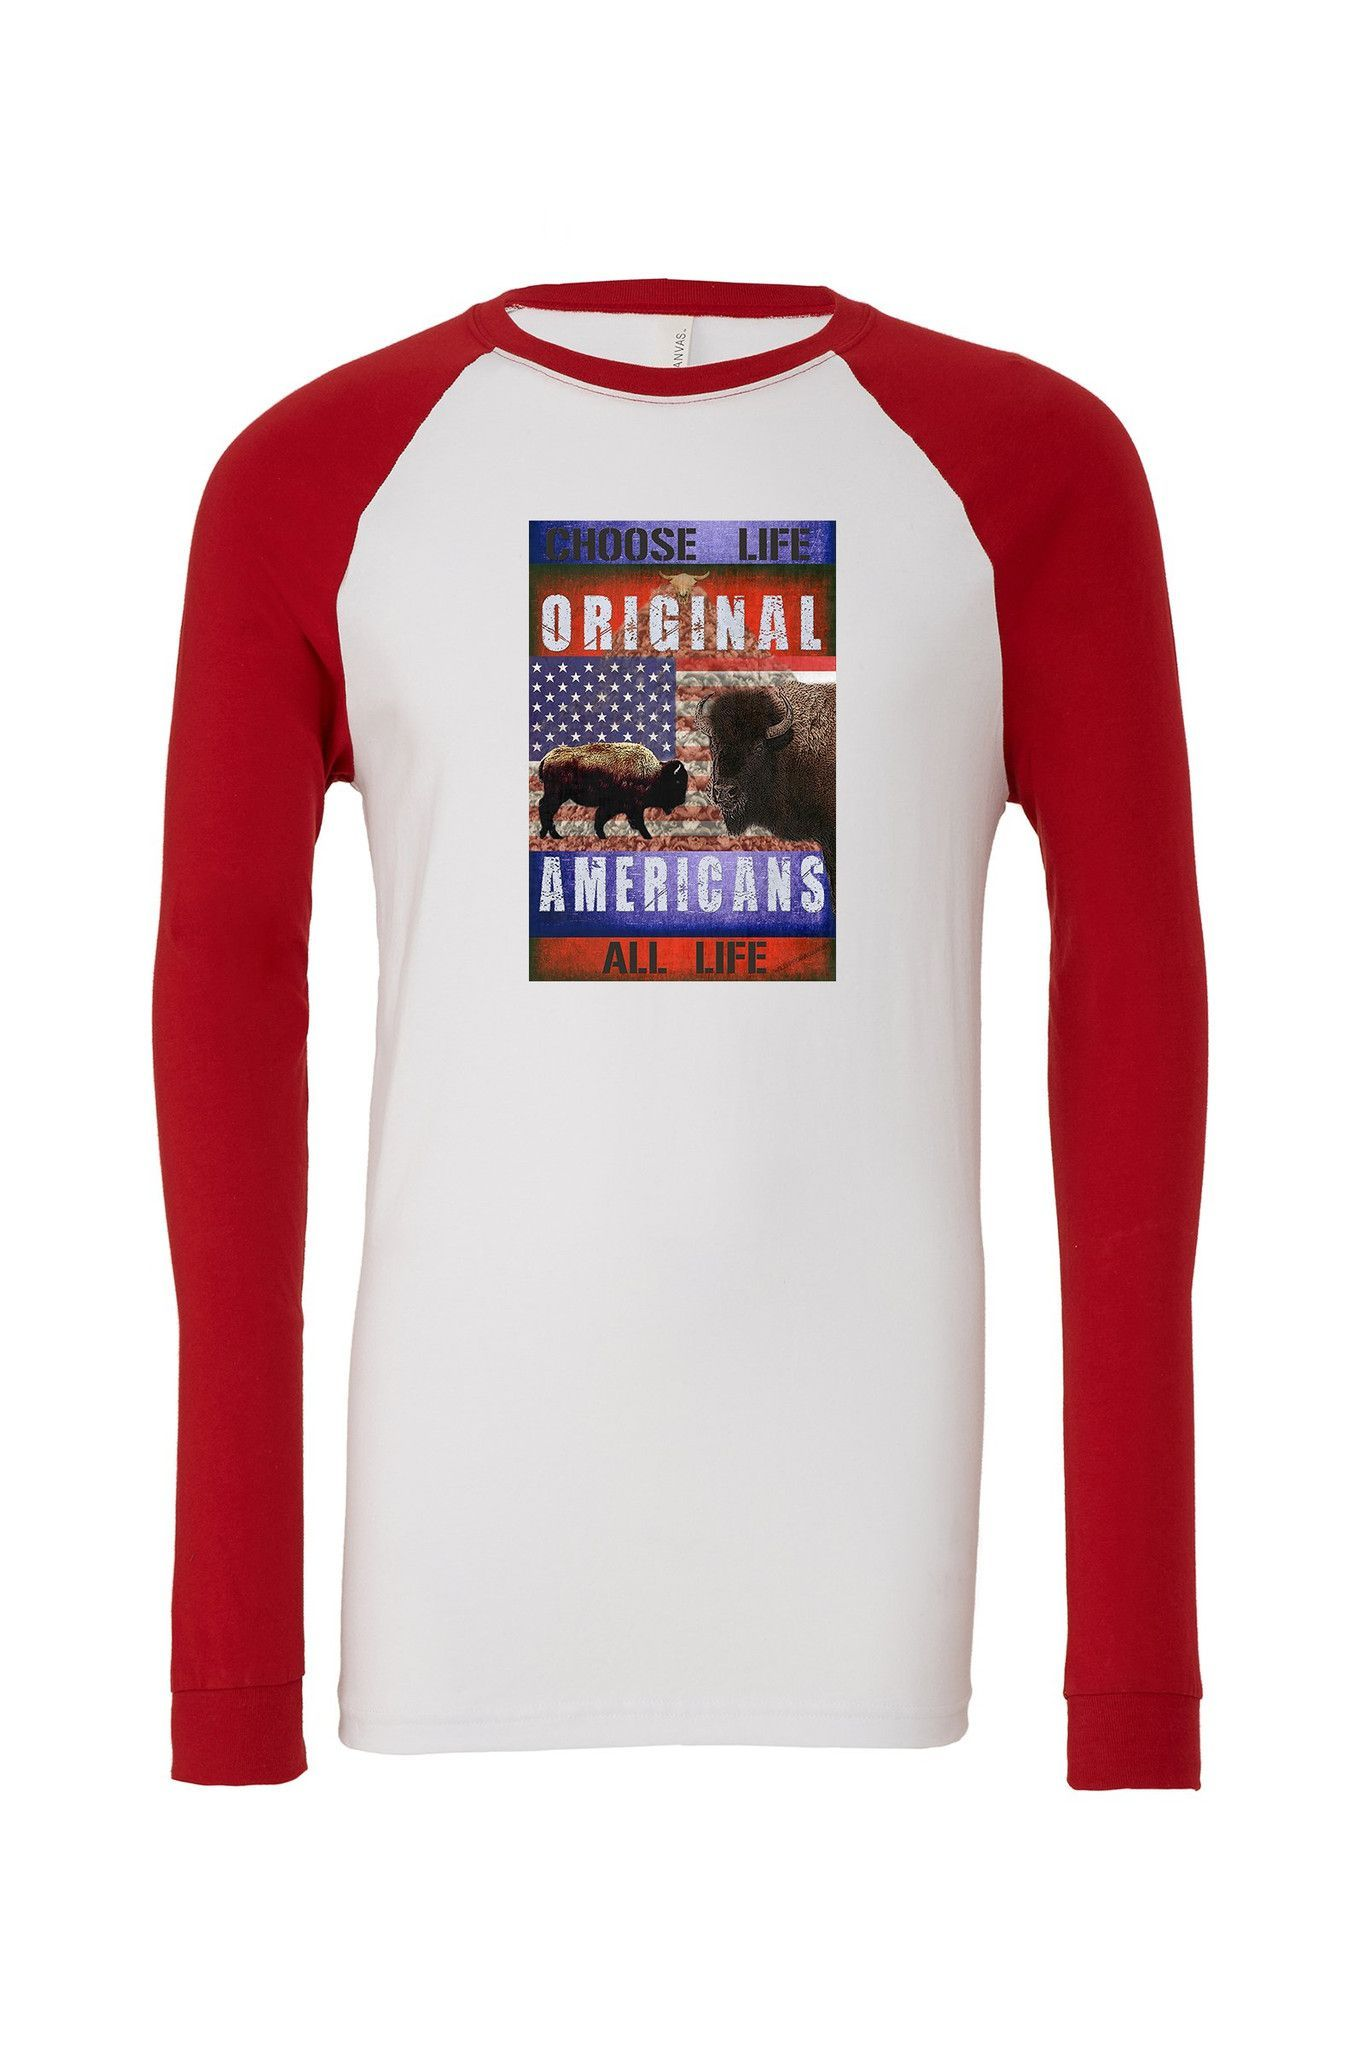 Buffalo: Original Americans Men's Jersey Baseball Tee